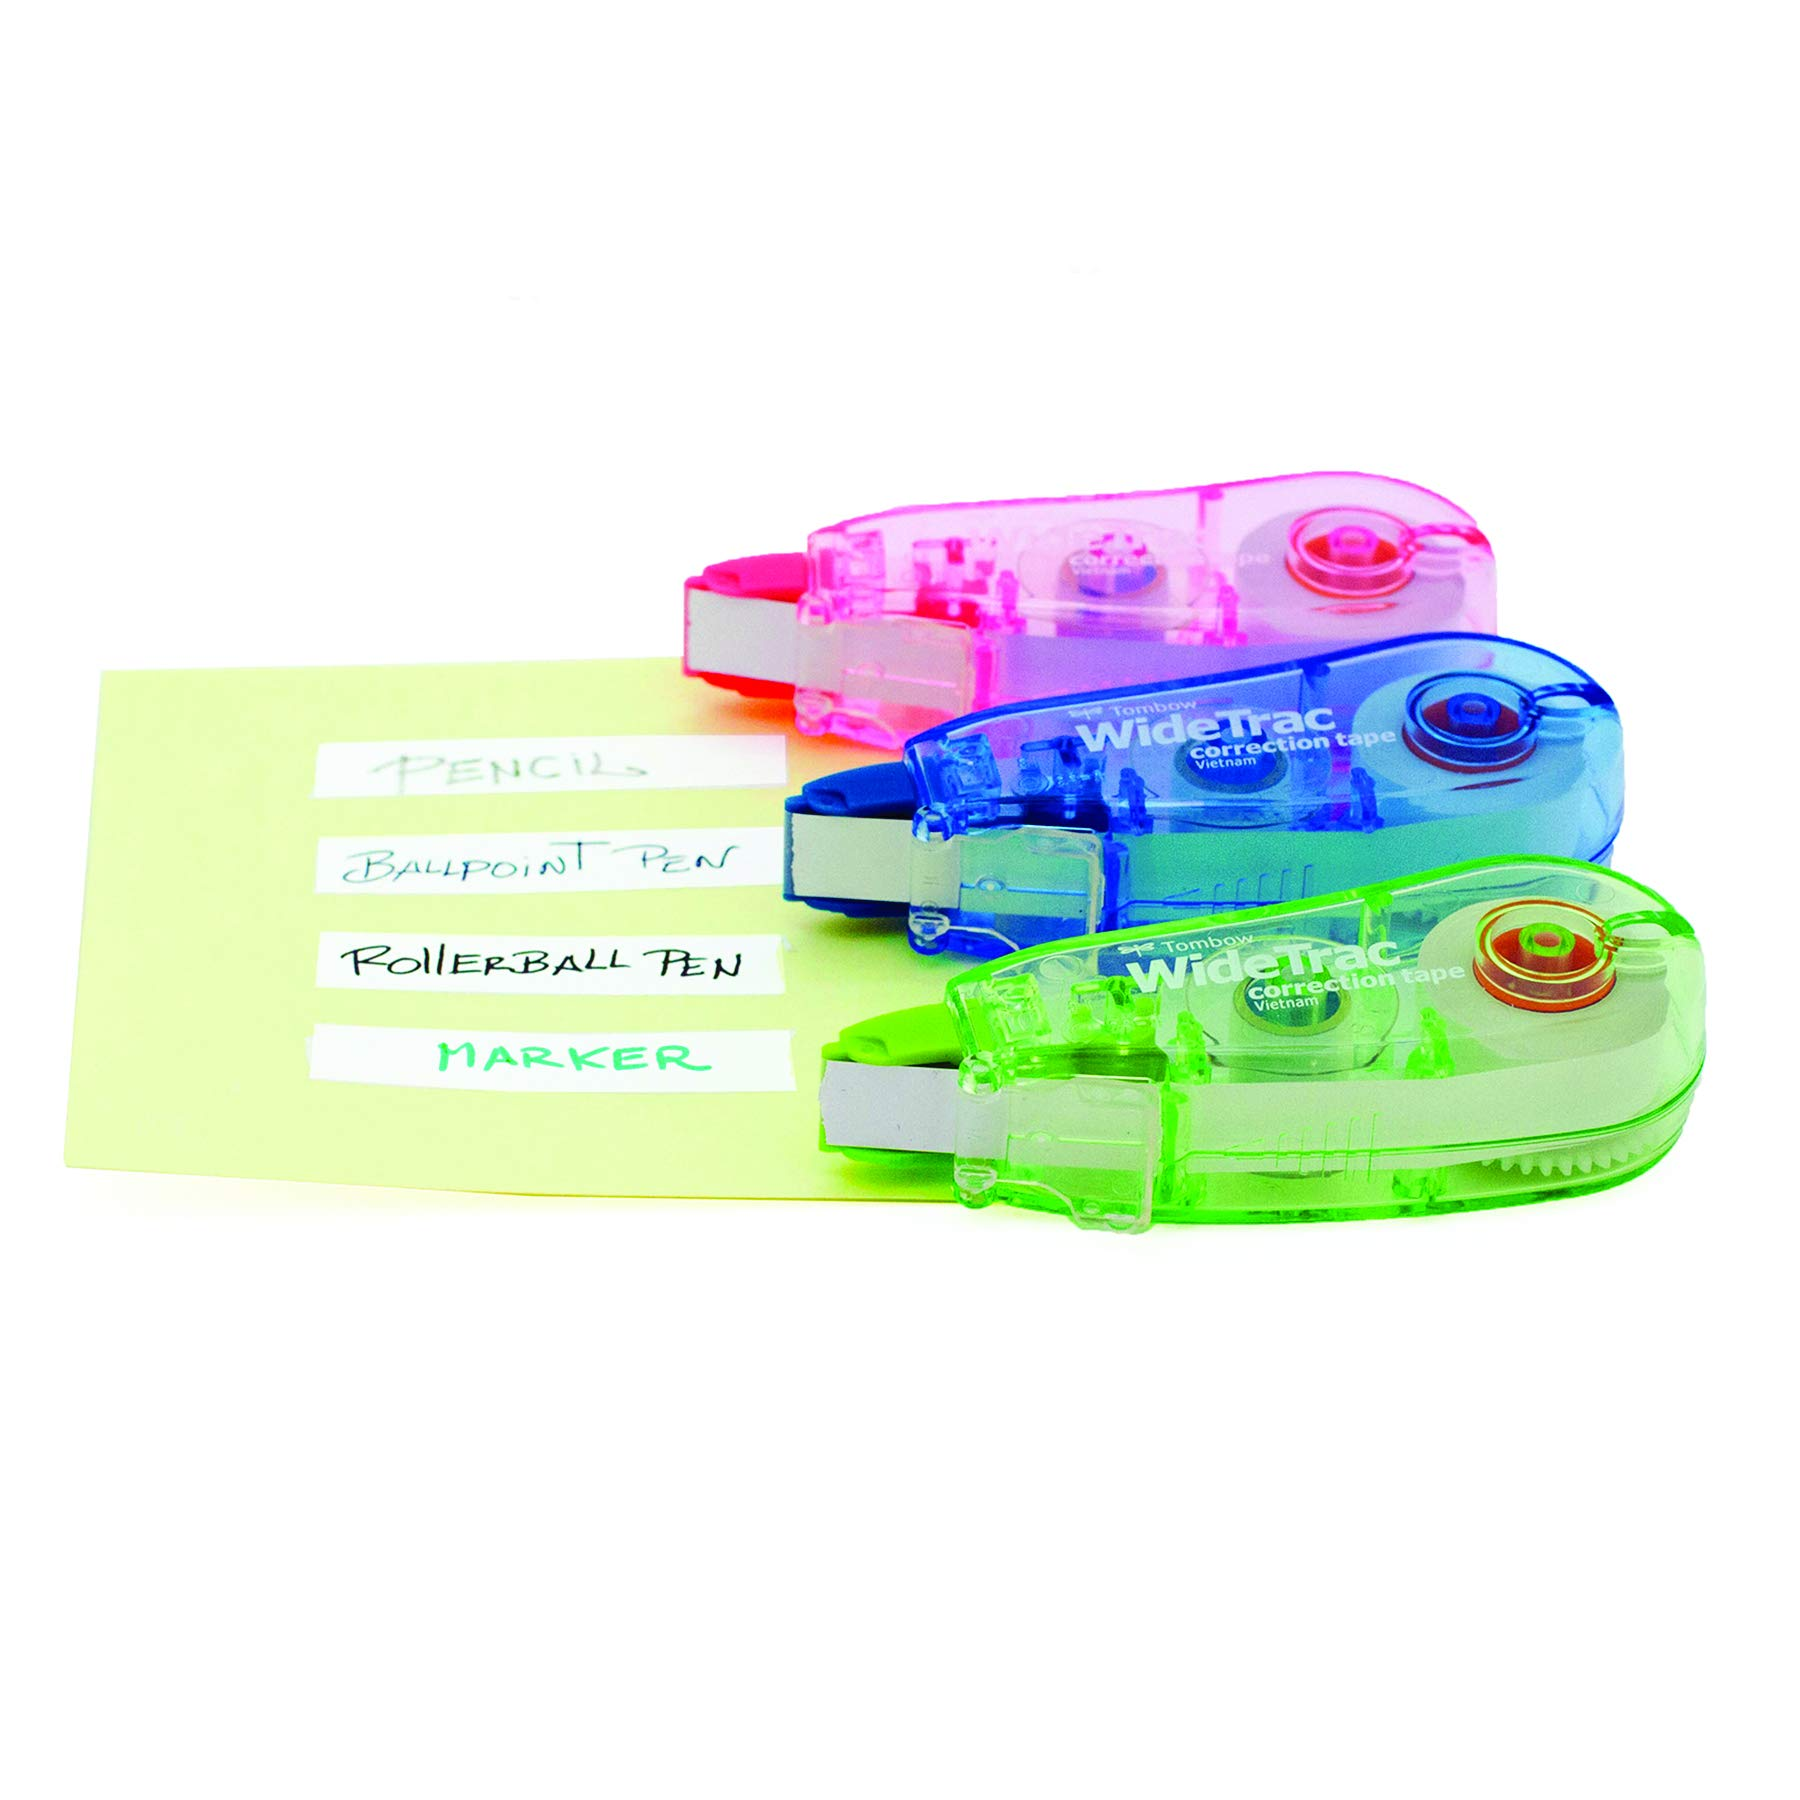 Tombow 68615 WideTrac Correction Tape, 3-Pack. Easily Covers Handwritten Notes in a Single Strip, Blue; Green; Pink by Tombow (Image #3)